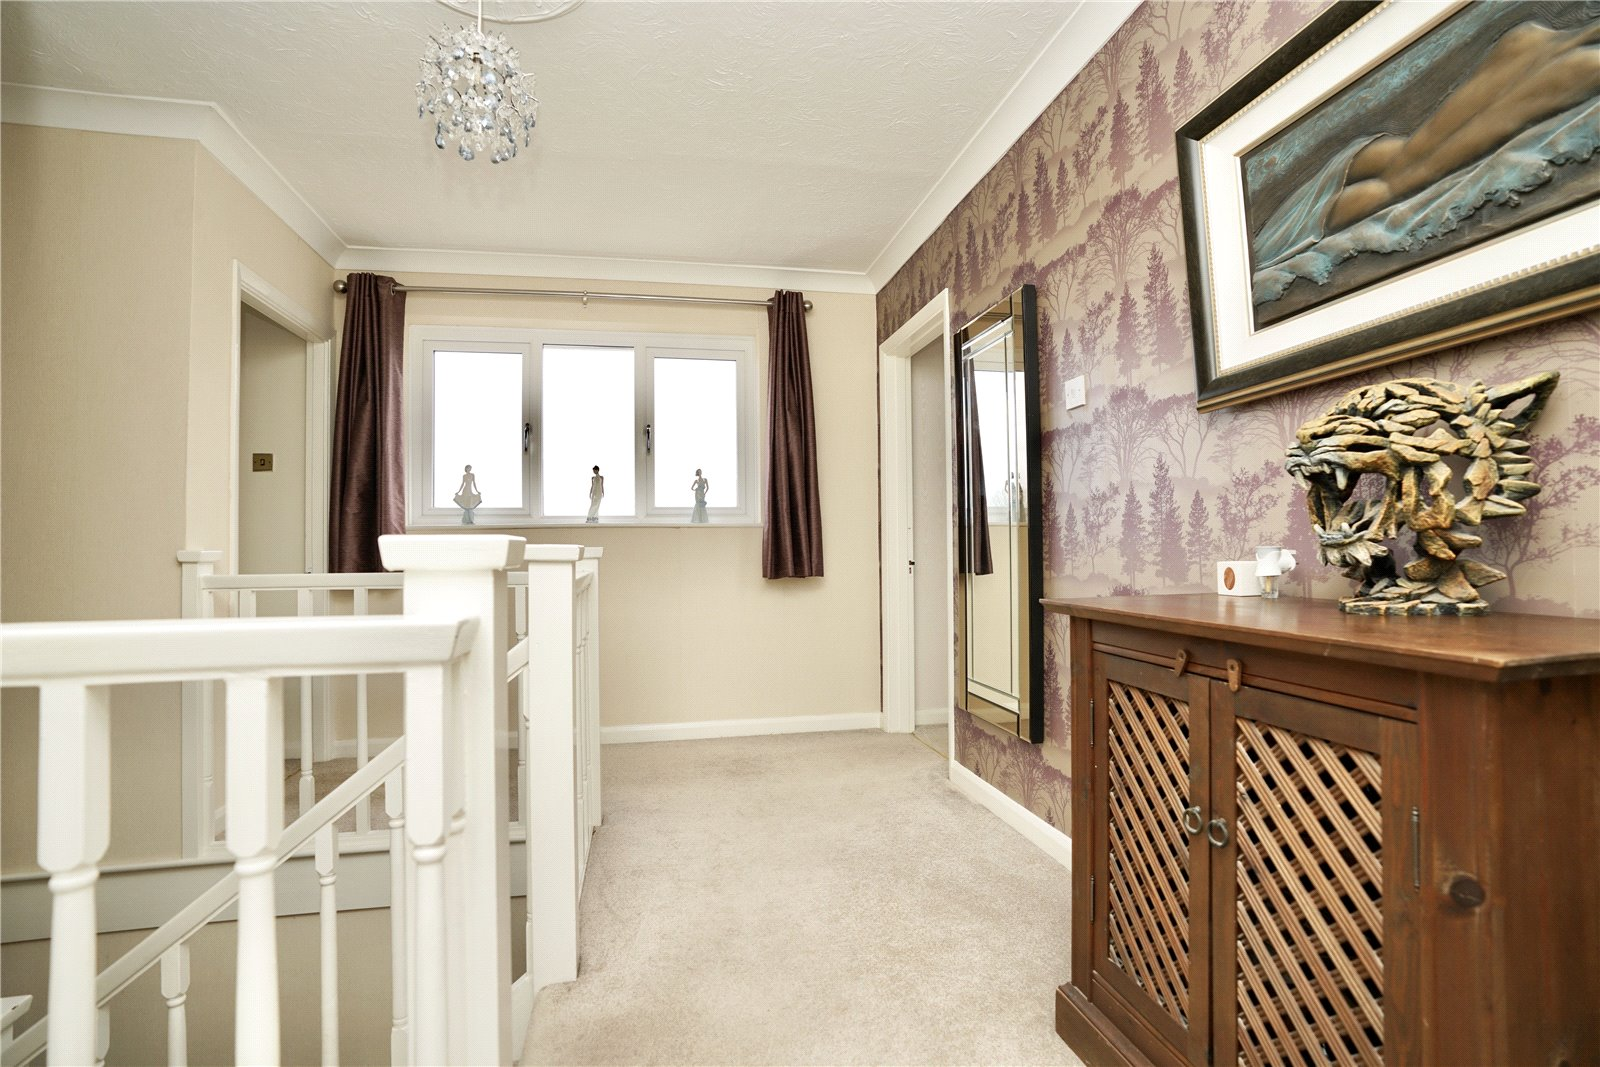 3 bed house for sale in Barley Road, Eaton Socon 6